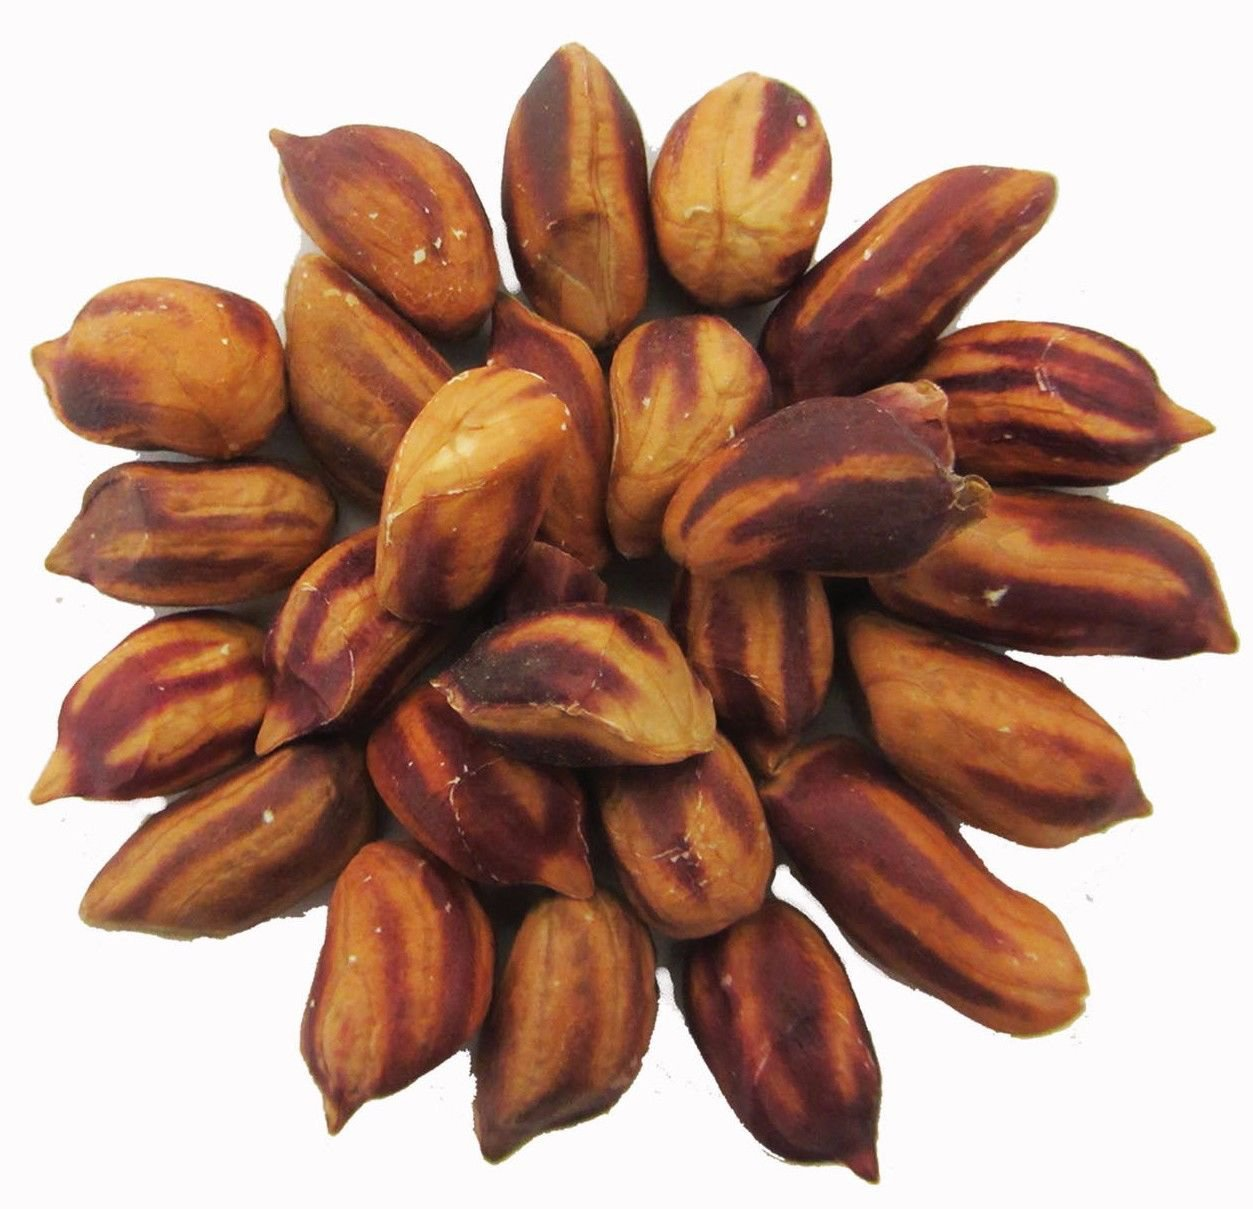 Organic Wild Jungle Peanut 5 seeds *Oldest peanut variety * Very tasty!* *SHIPPING FROM US* CombSH